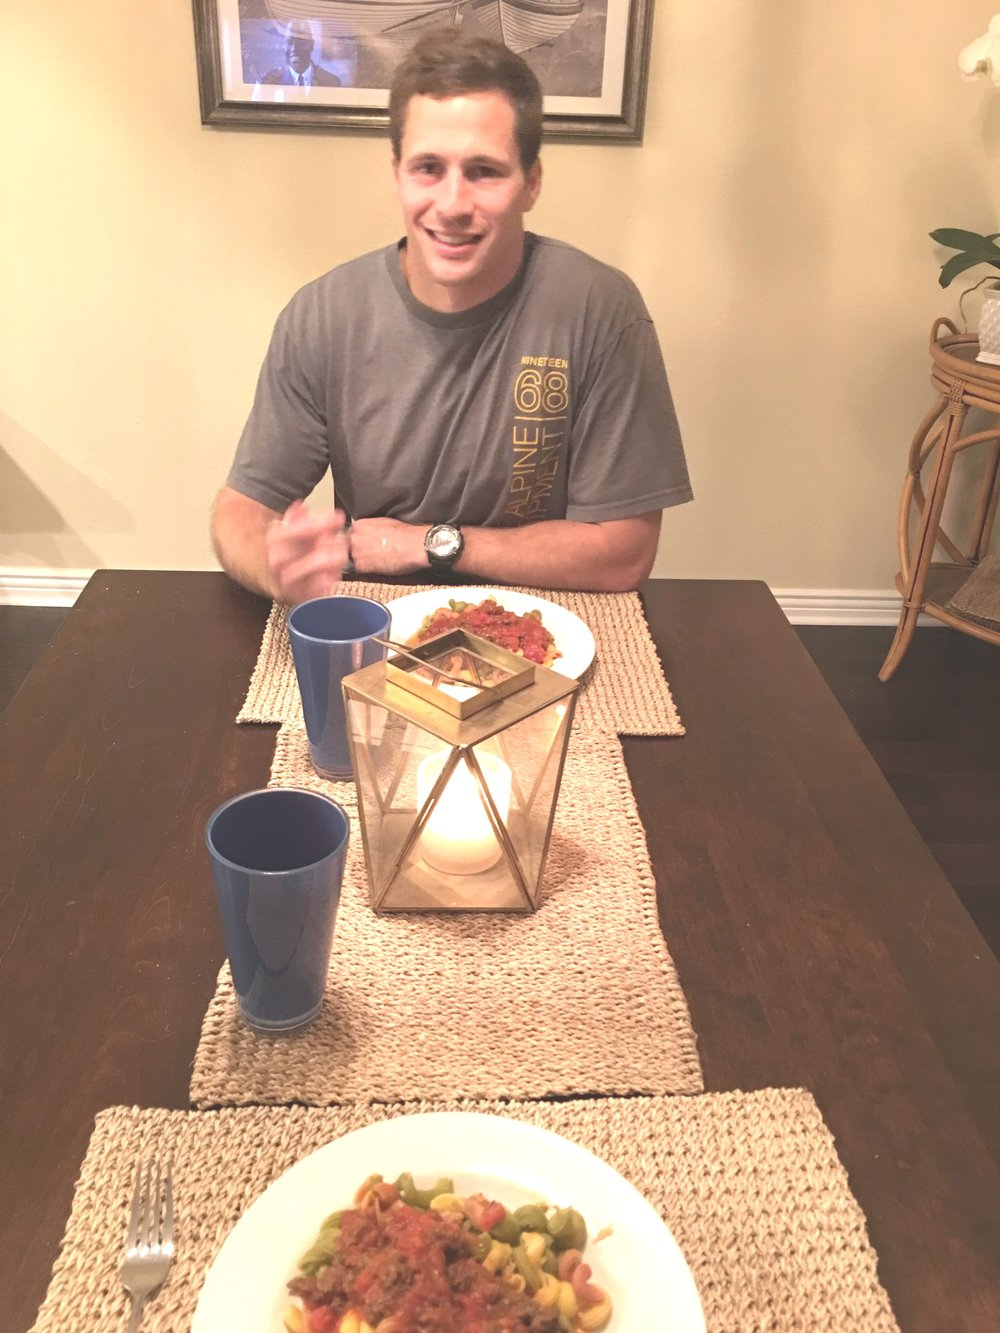 He surprised me with an at home dinner date